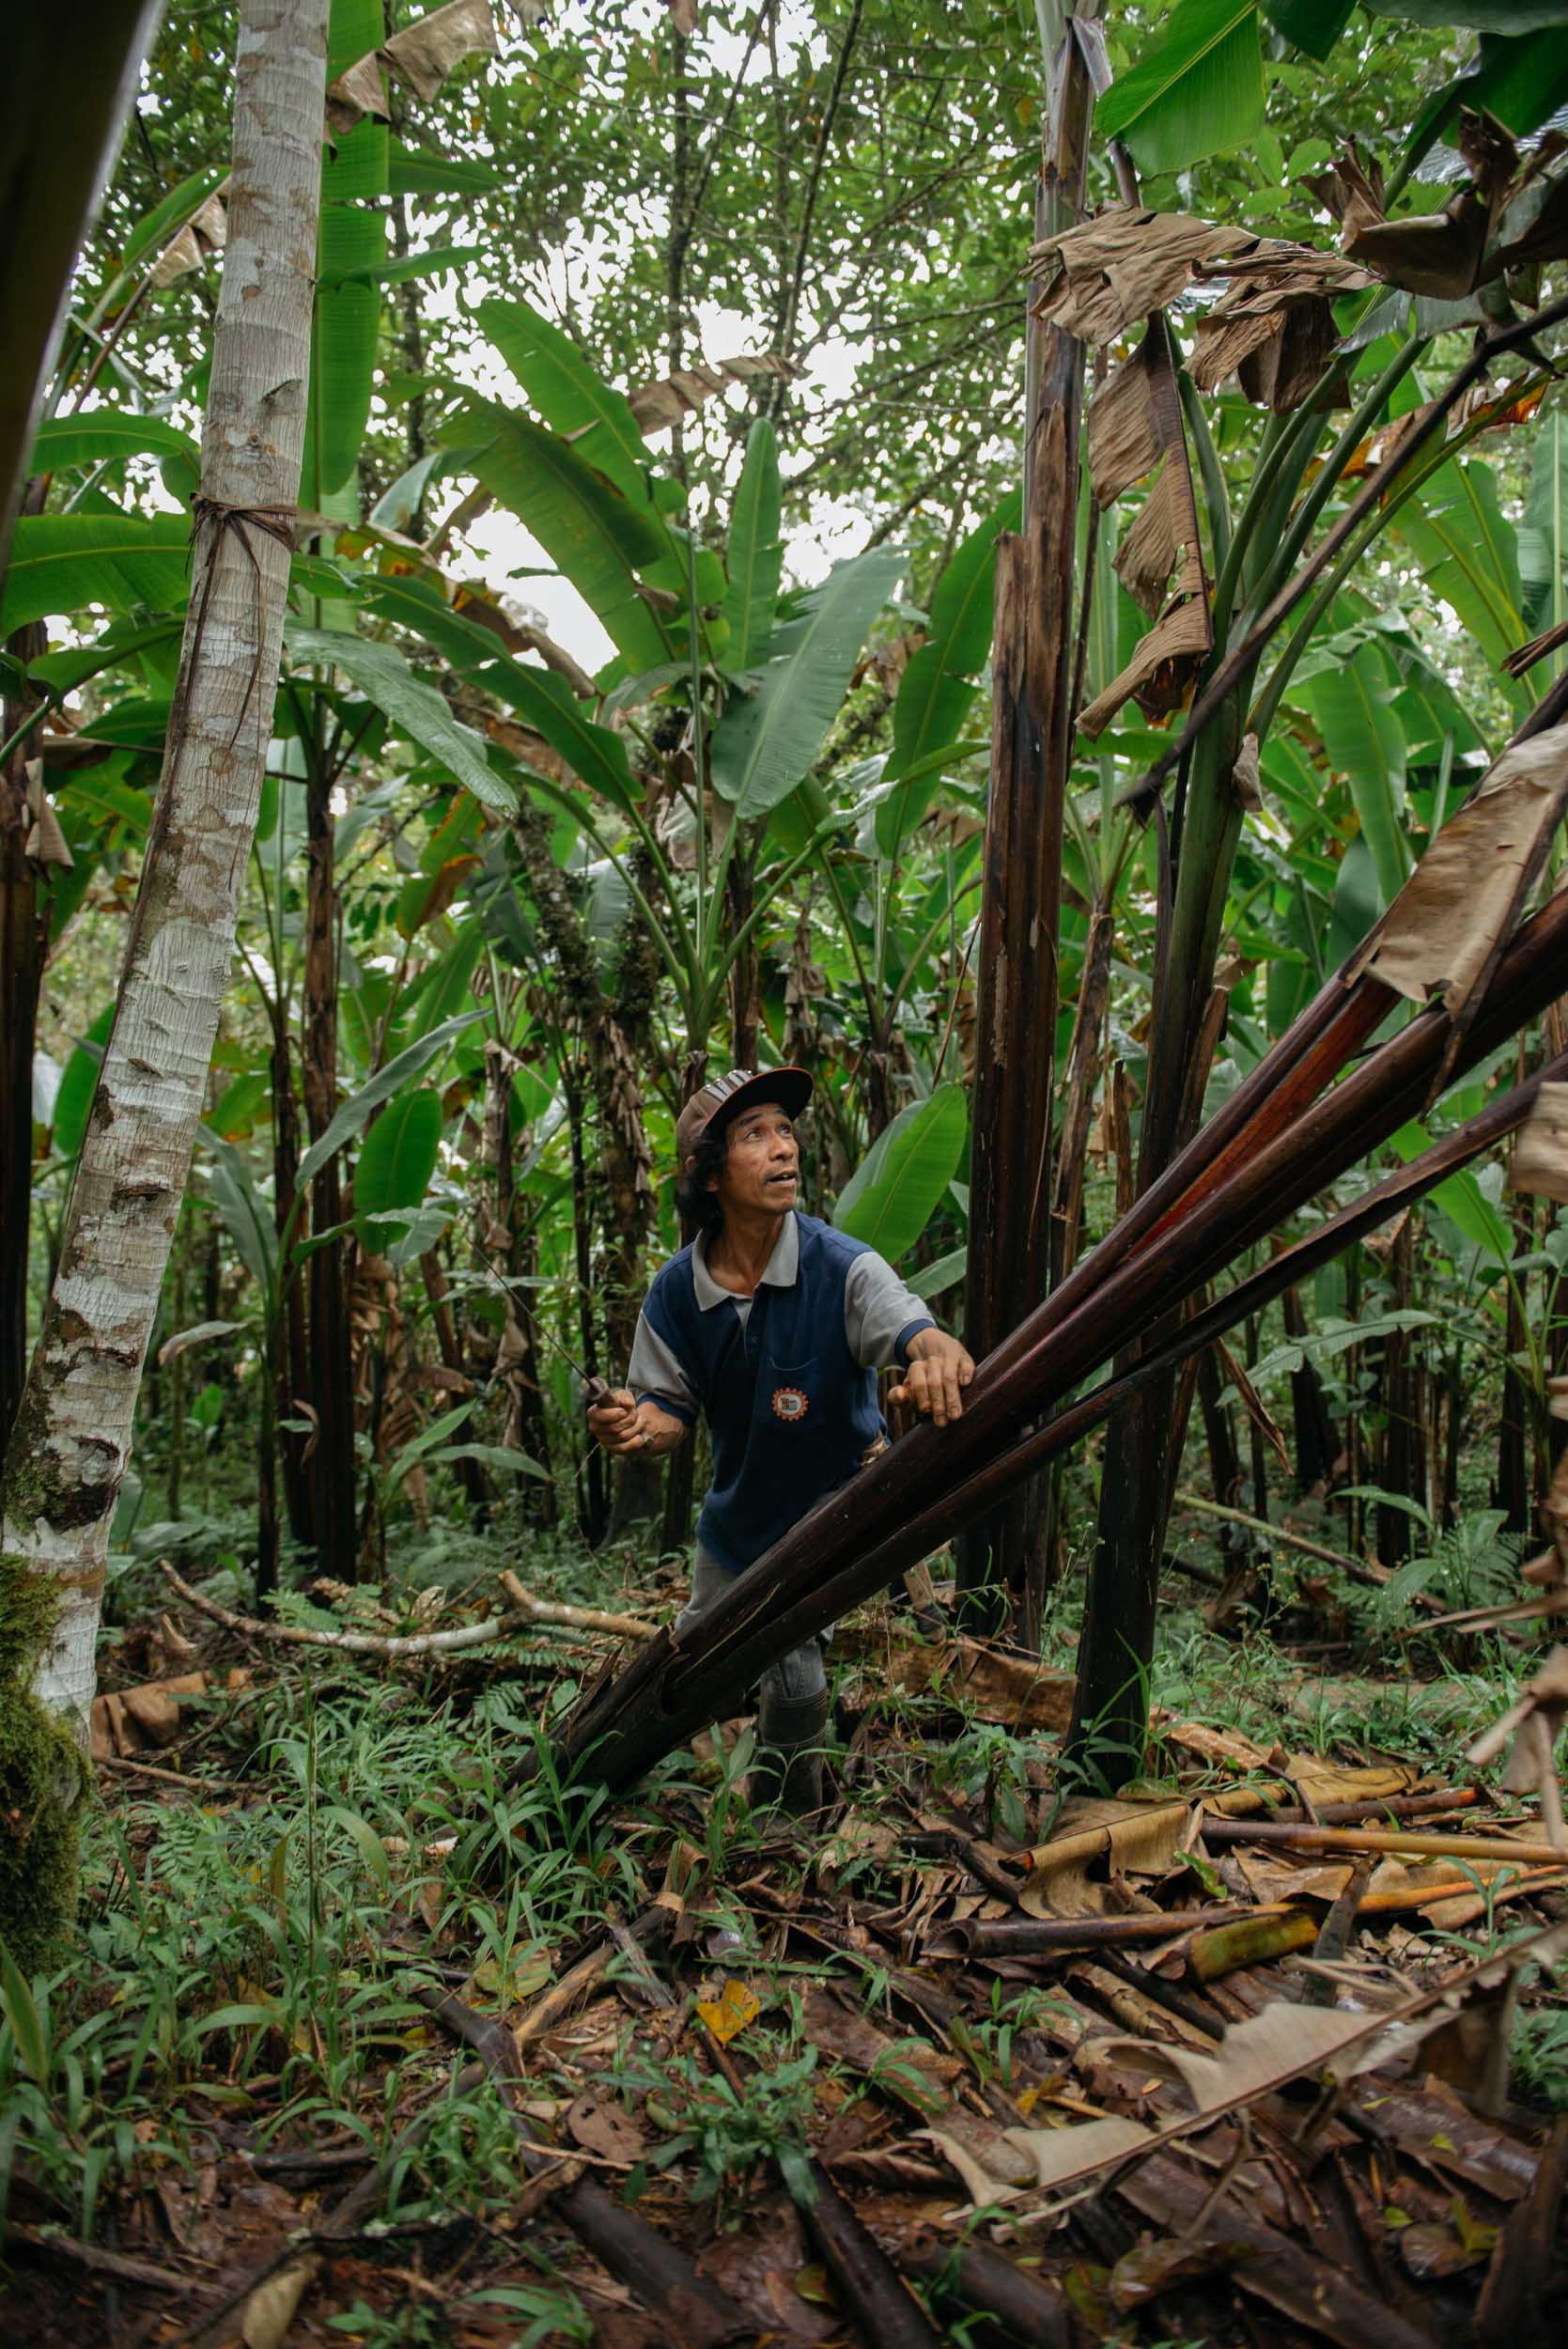 The process of Hinabol weaving starts with the abaca. A30-minute hike from the community, hectares of abaca trees were kept in best condition by the rainforest's excellent soil and the Higaonon's indigenous ways of sowing trees.